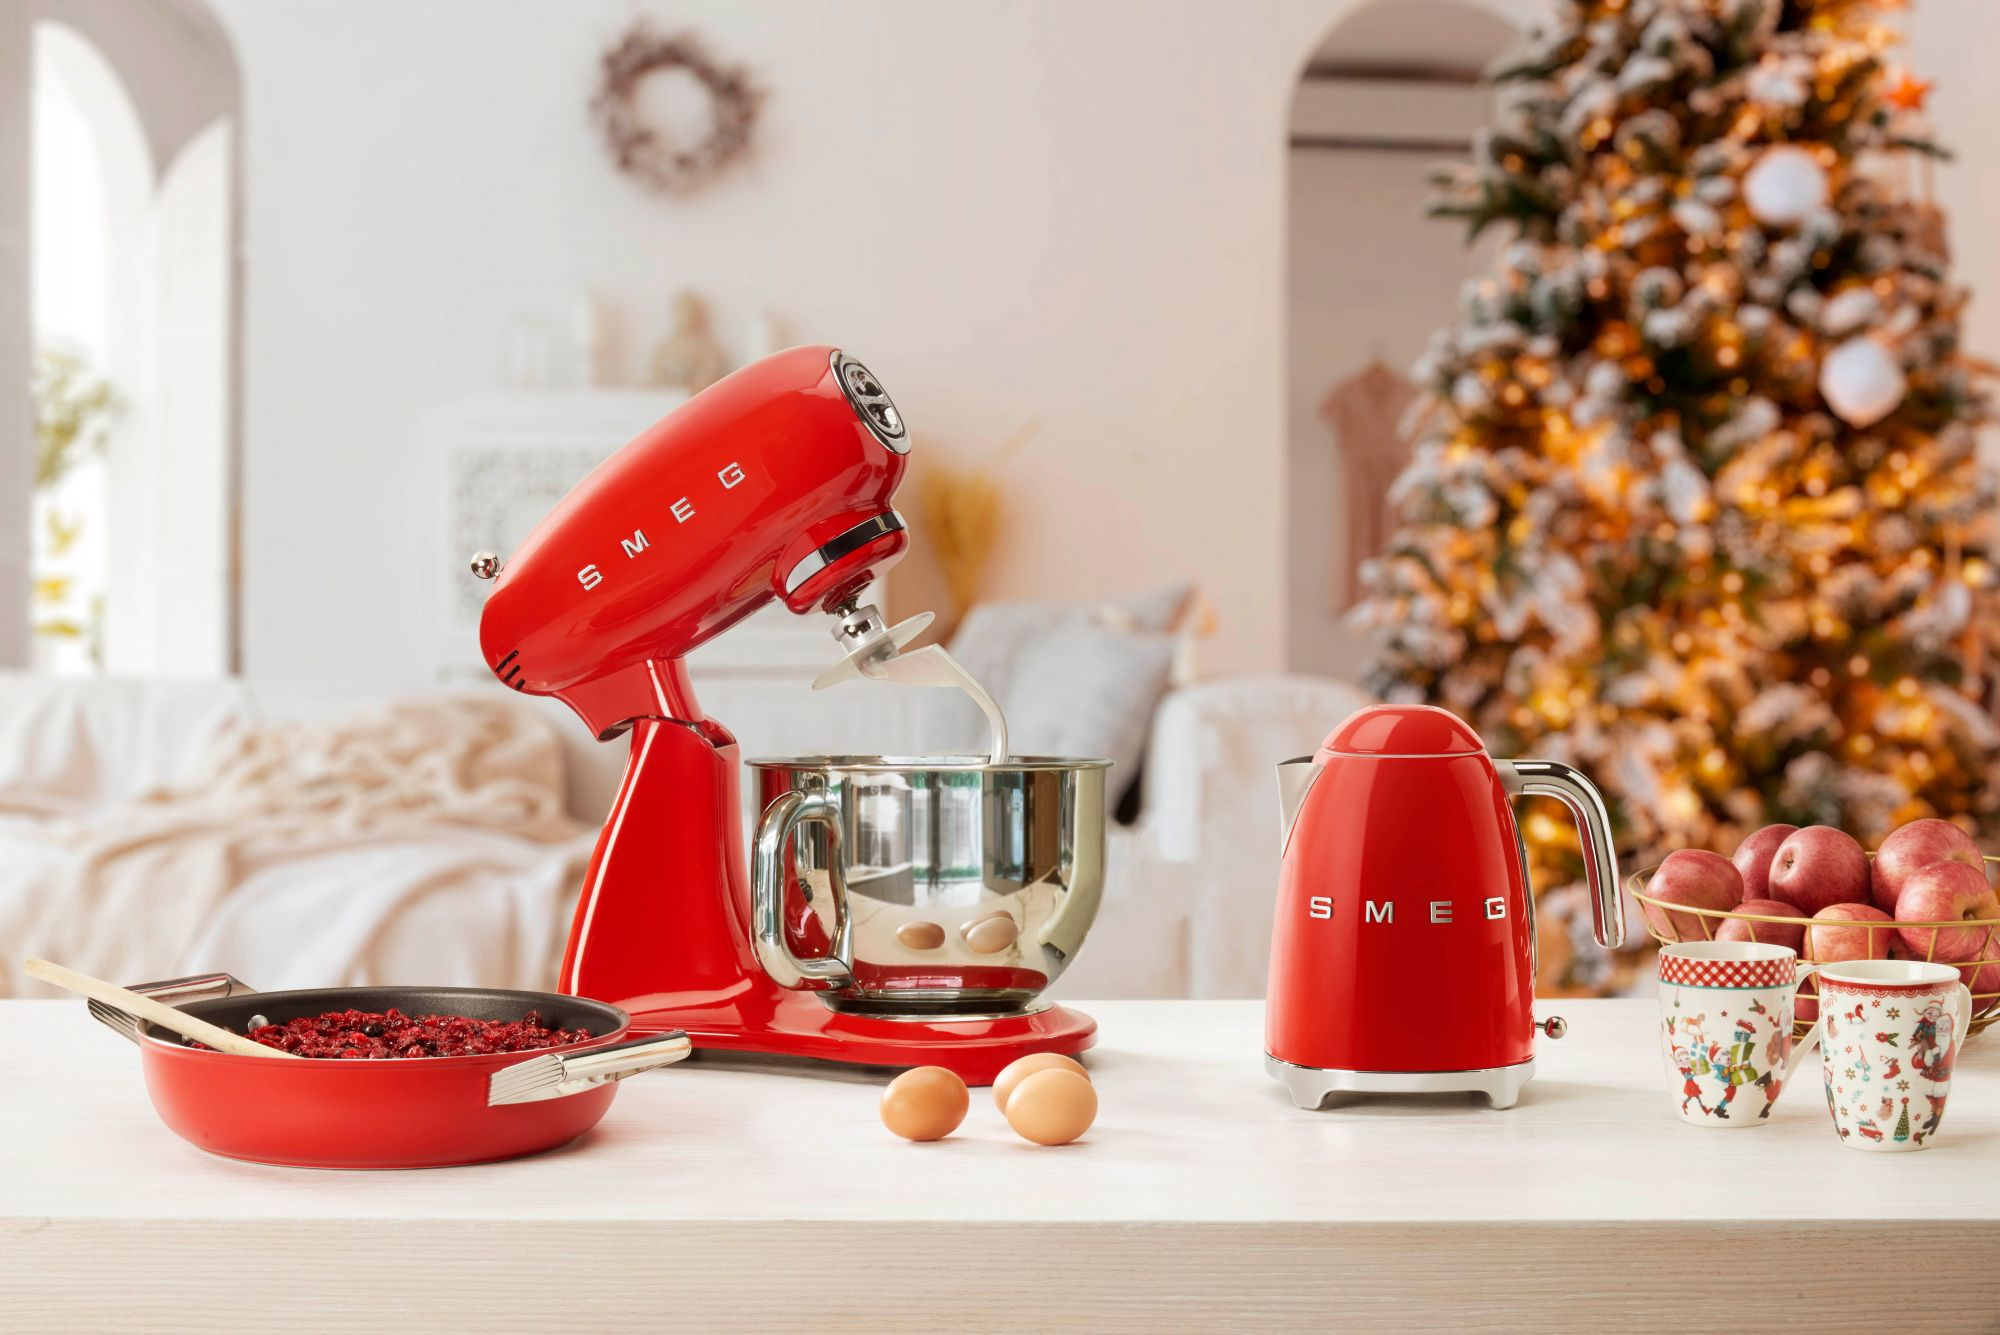 Coffee Grinder, Citrus Juicer, Milk Frother: 6 Must-Have SMEG Appliances To Buy Before The Year Ends